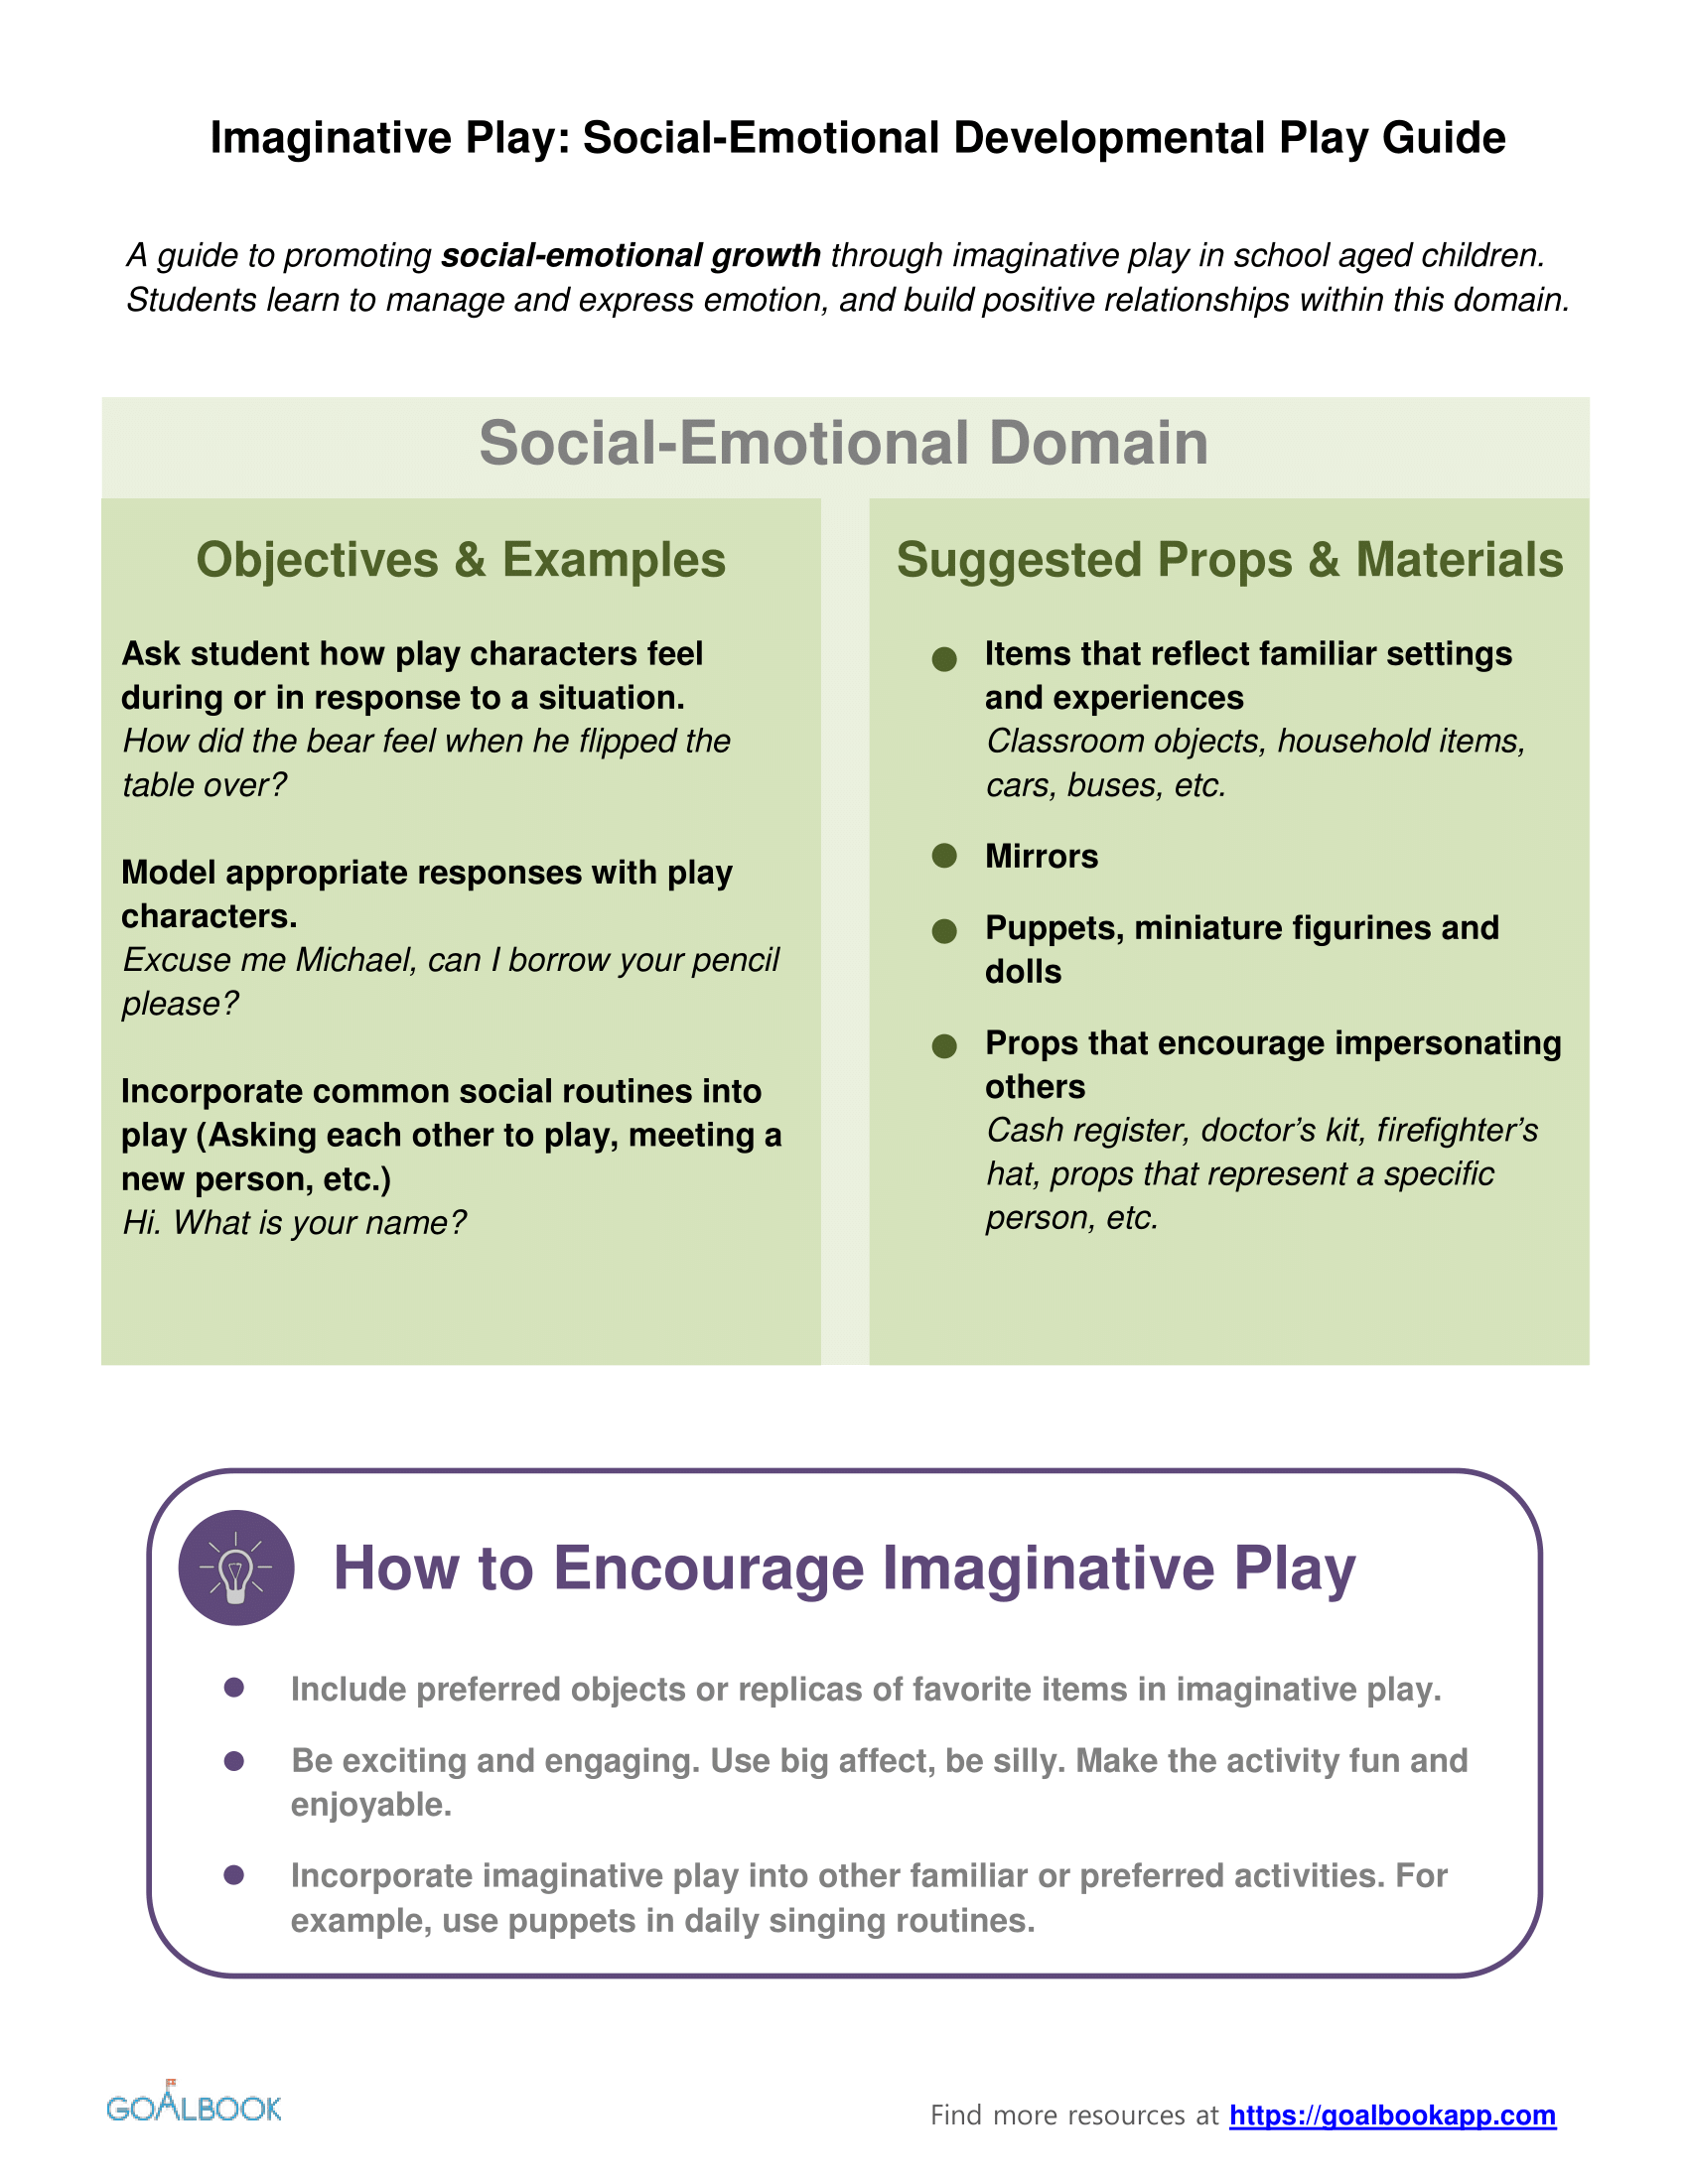 Social-Emotional Development Imaginative Play Guide